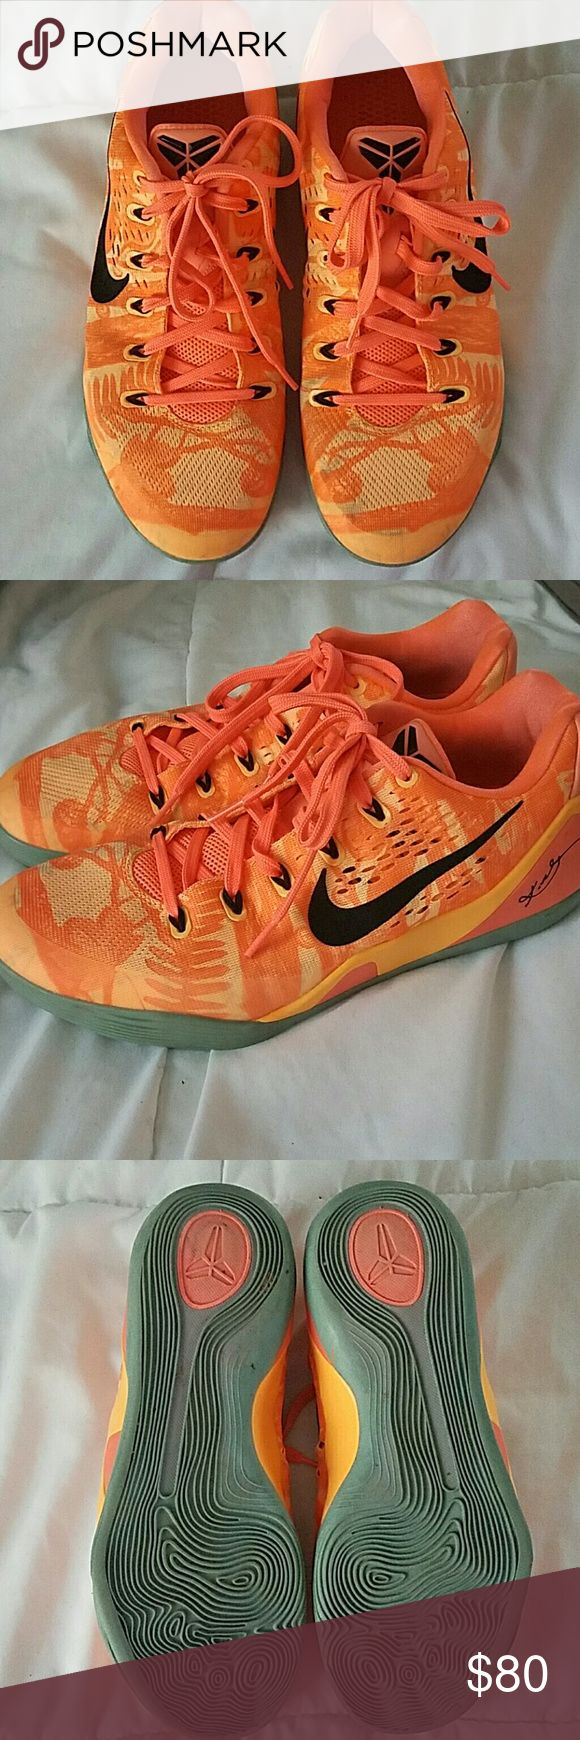 Kobe basketball shoes Basketball shoes maybe worn 5 times some wear as you can see in pics Nike Shoes